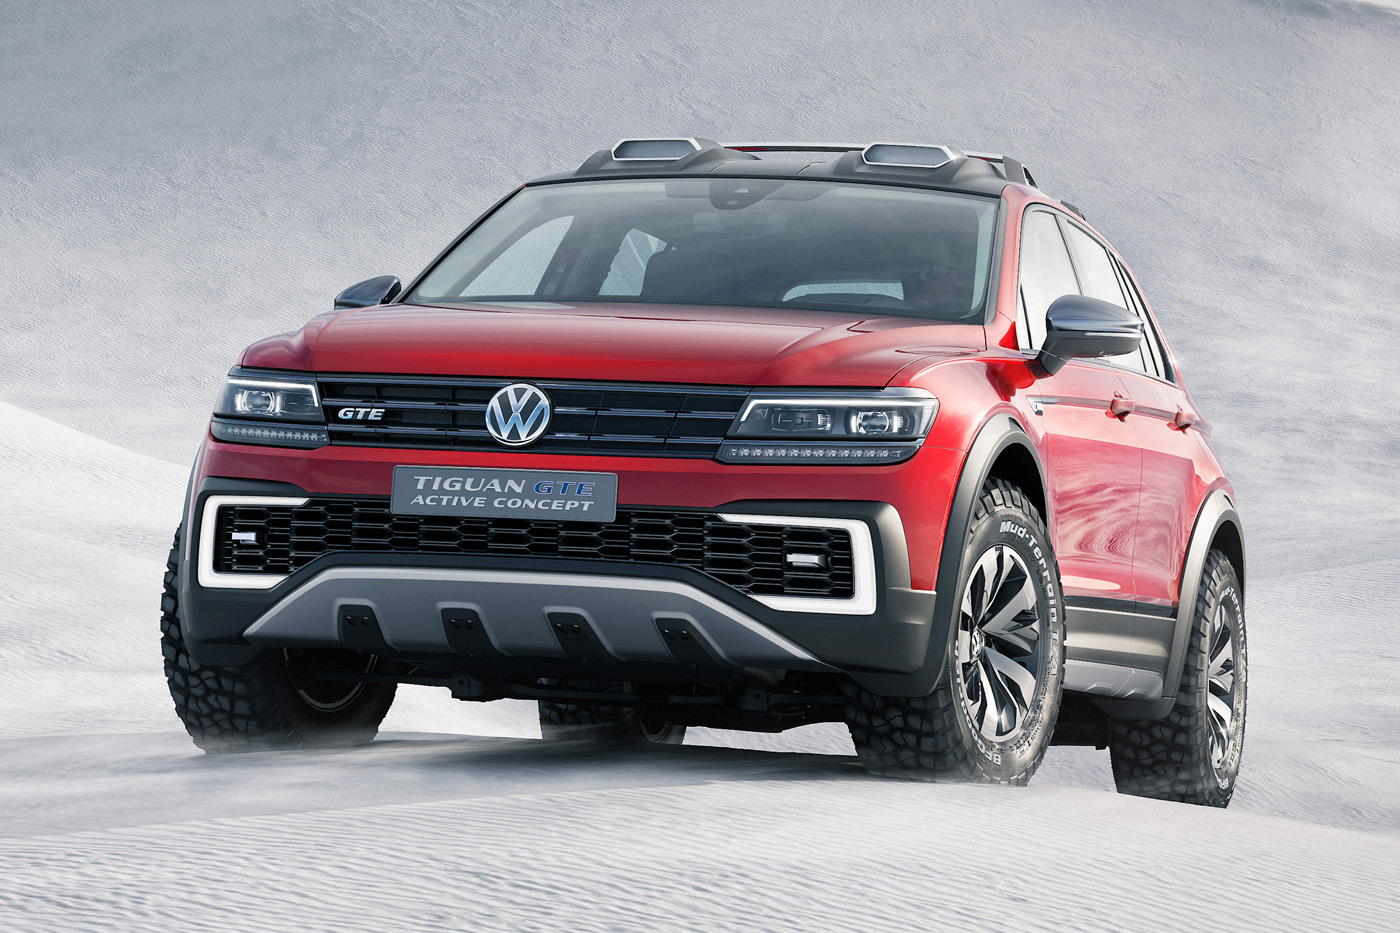 VW's latest plug-in hybrid is built for off-roading